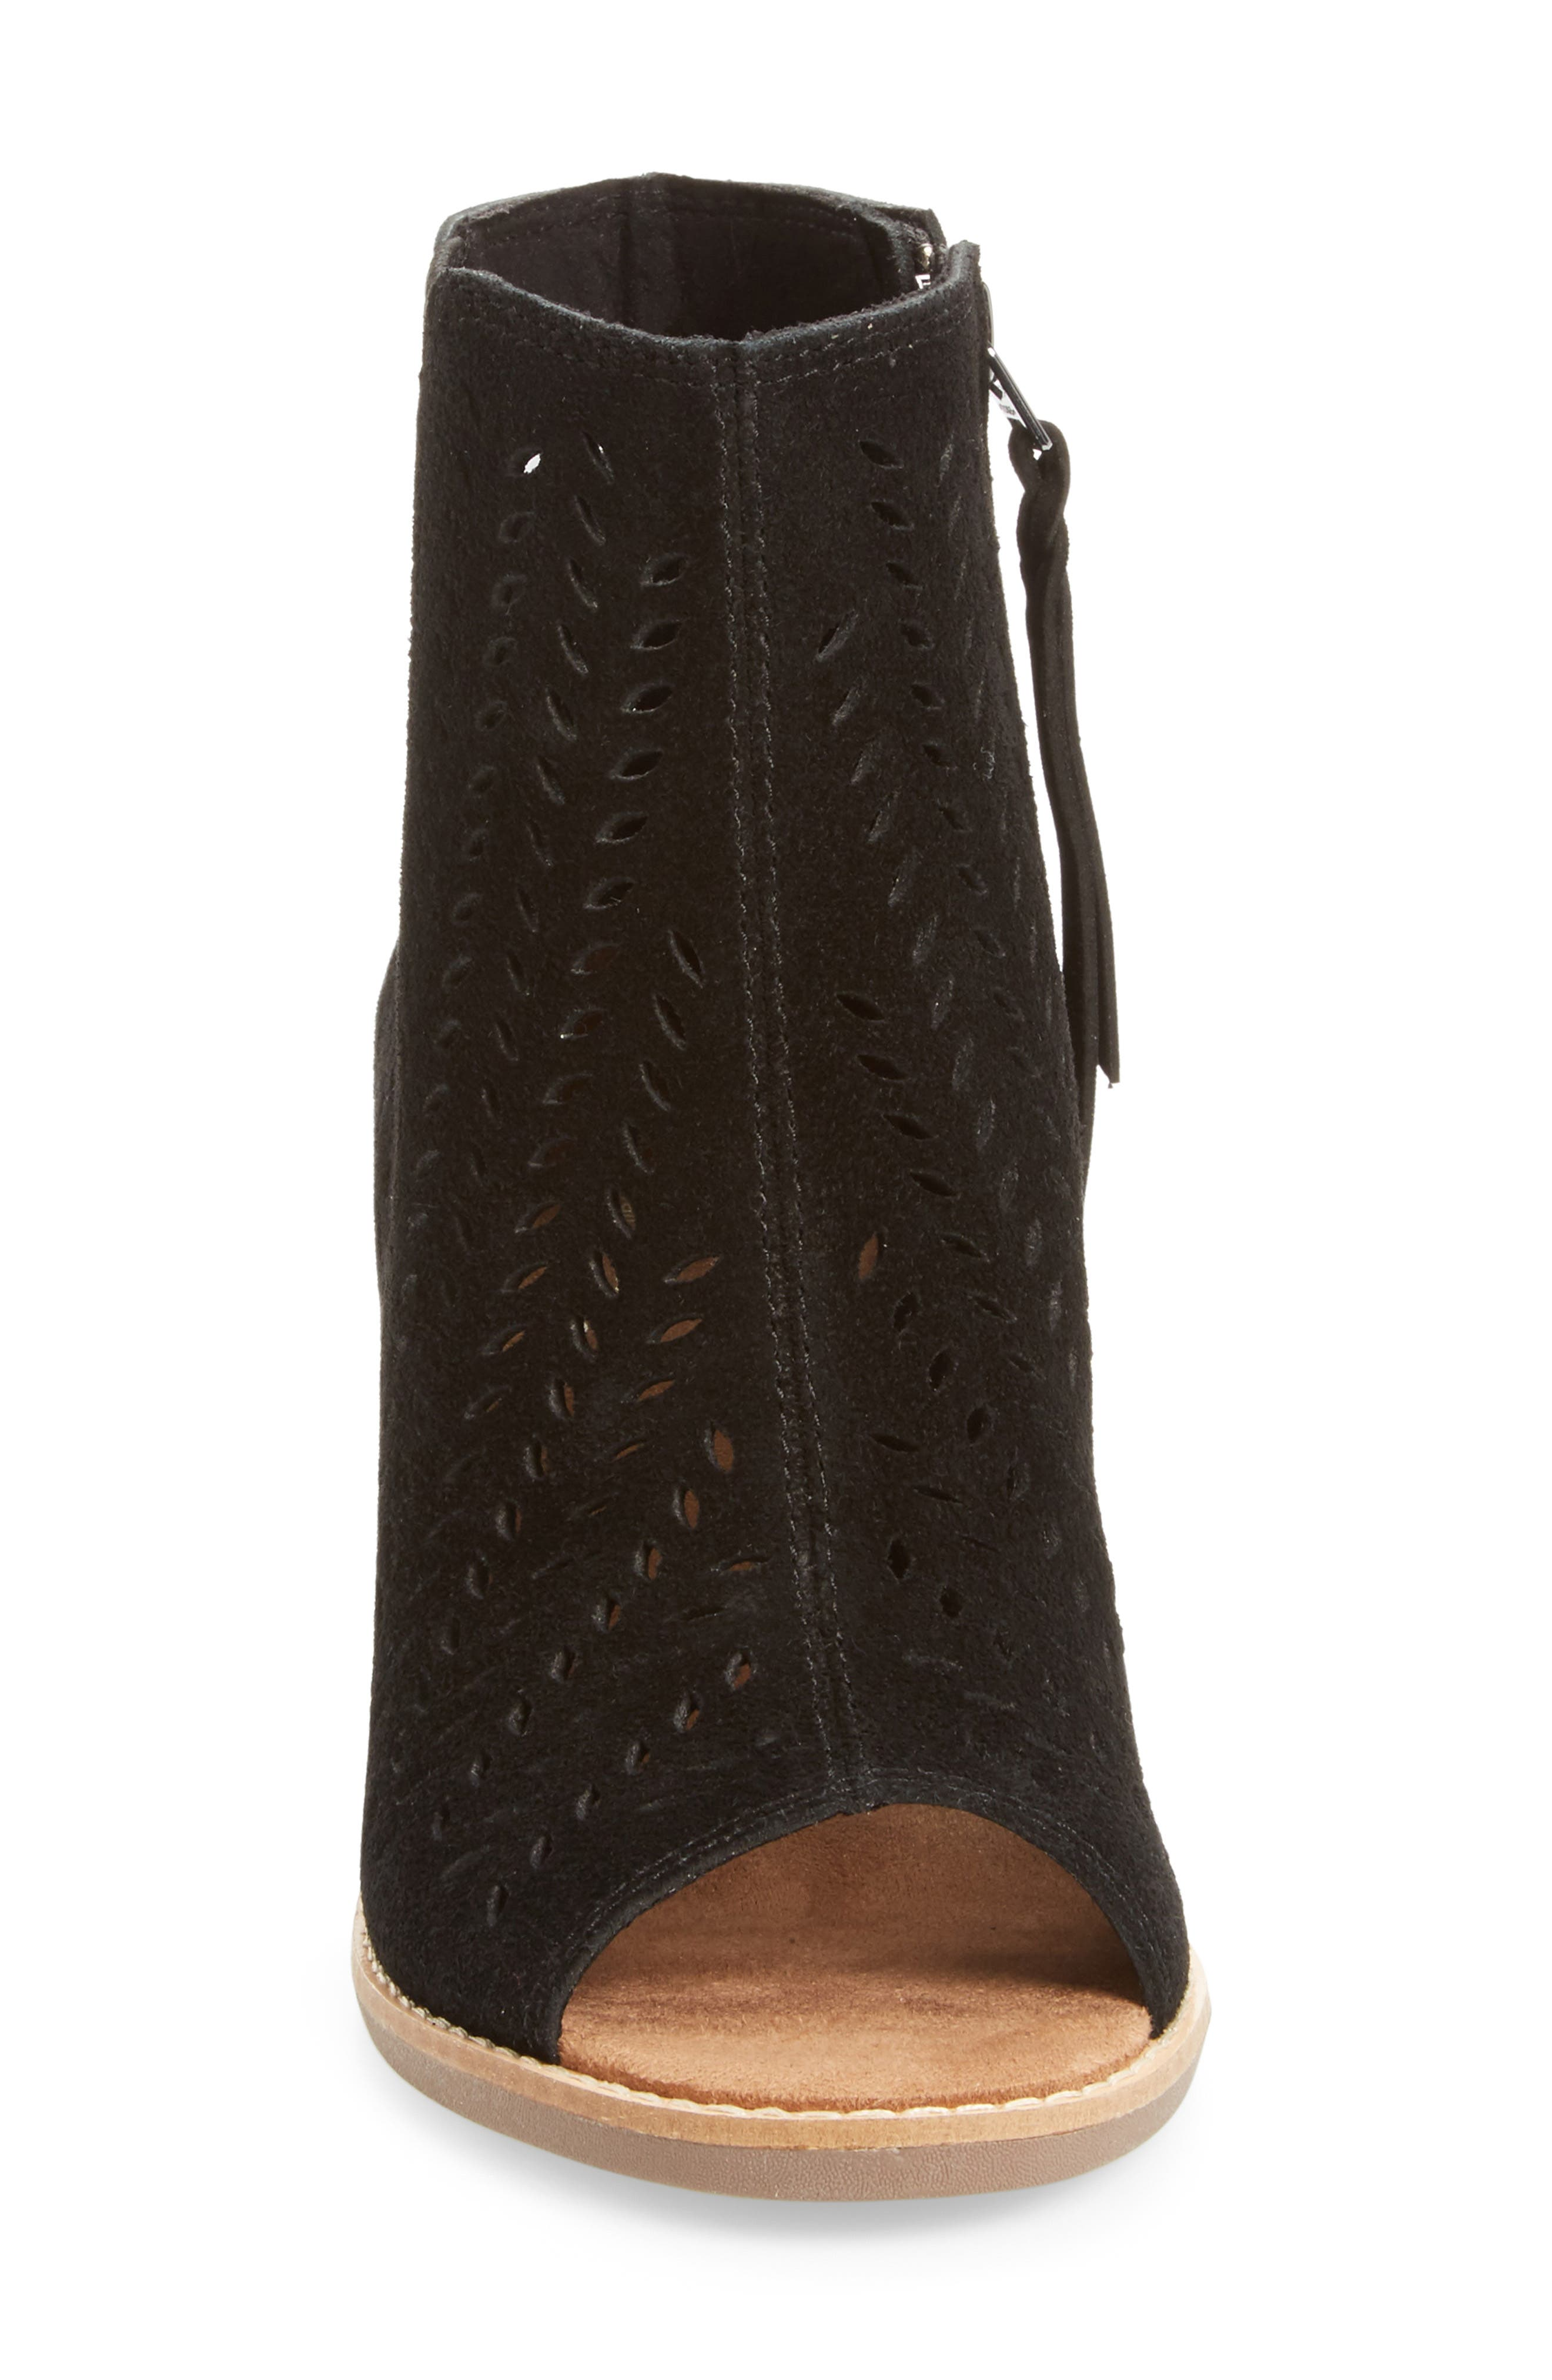 Majorca Perforated Suede Bootie,                             Alternate thumbnail 3, color,                             001